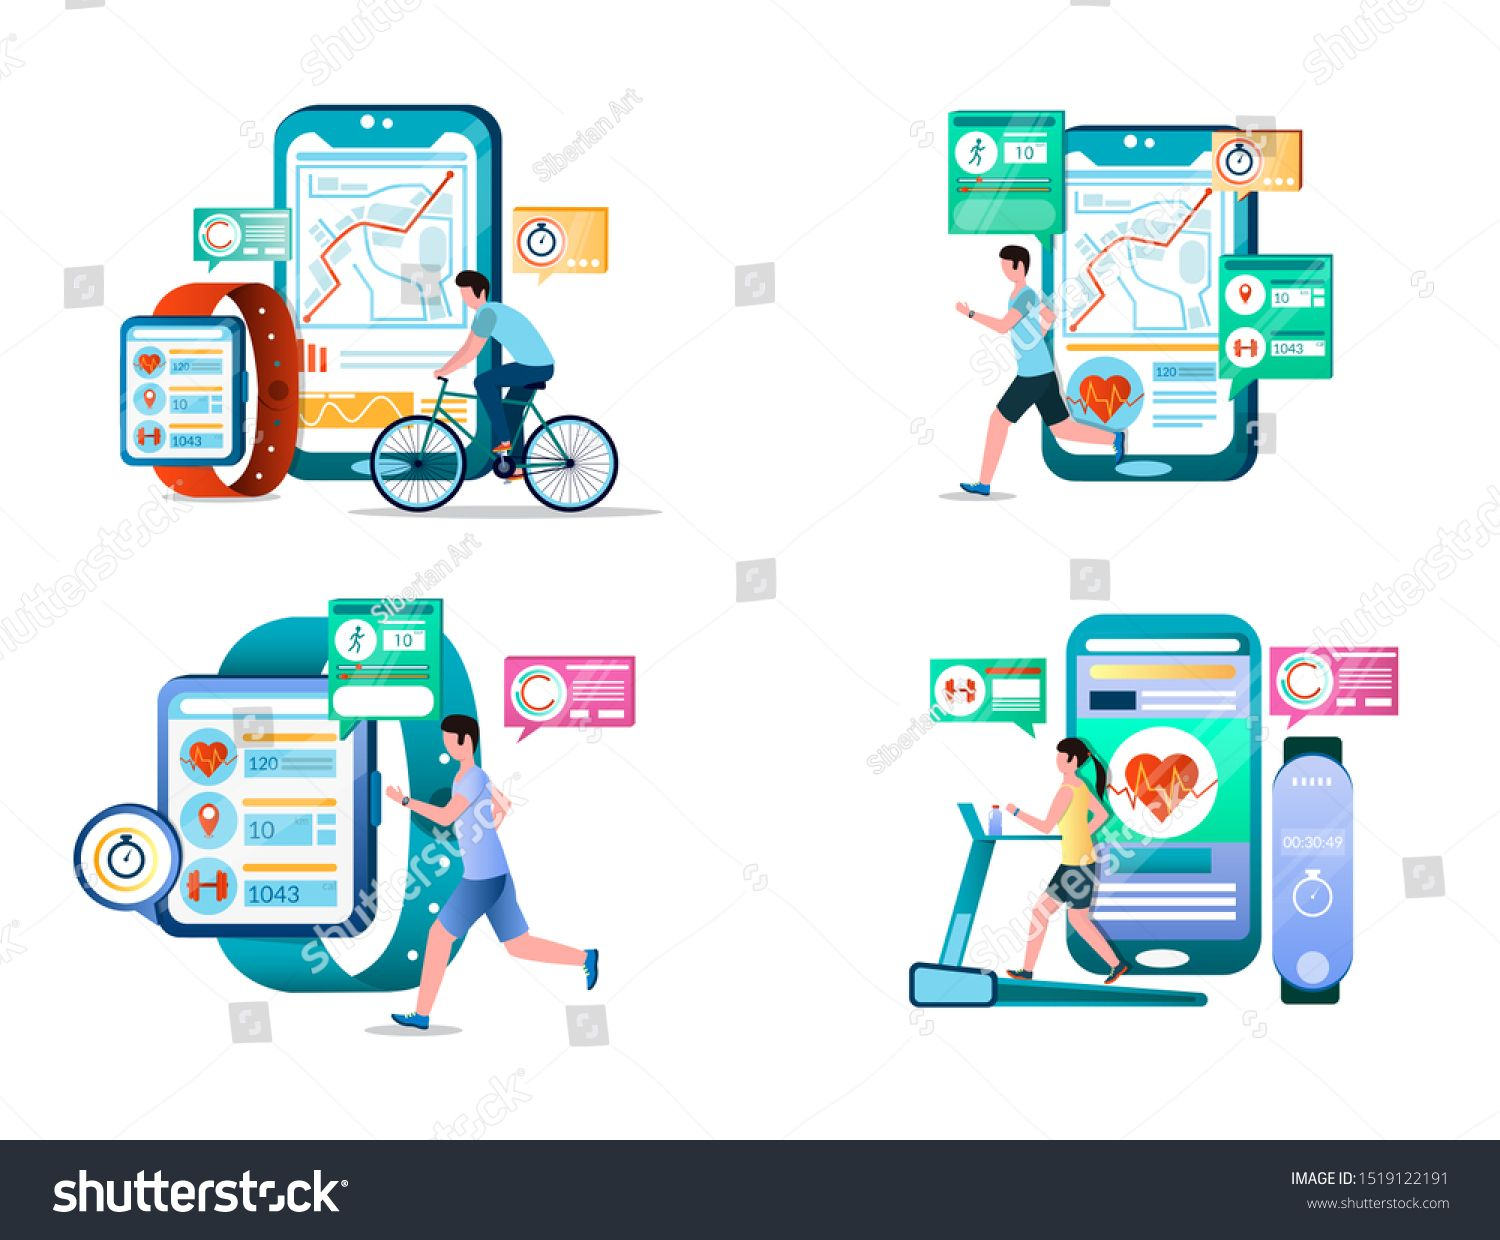 Fitness vector concept illustration set isolated on white background. Smart workout with fitness tra...